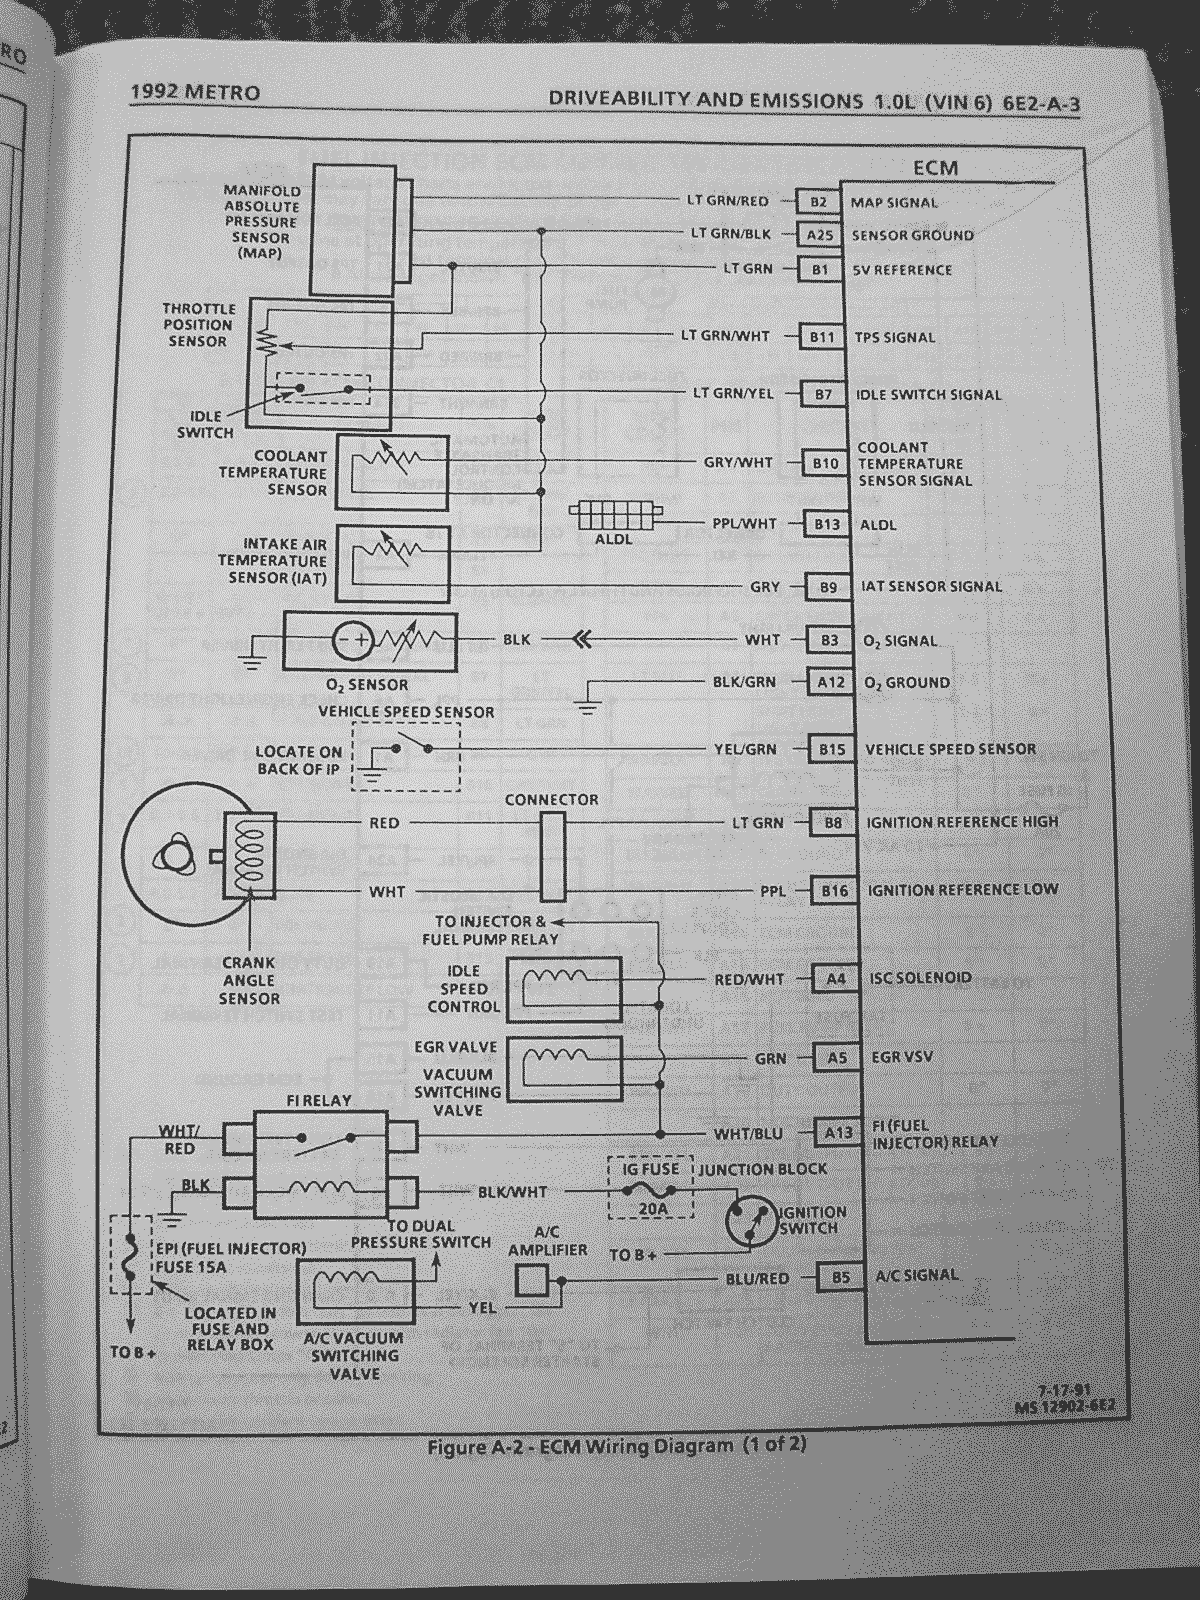 Metro Wiring Diagram Auto Electrical 1992 Geo Xfi 10 Engine And Suzuki Swift Diagrams U2013 Metroxfi Com